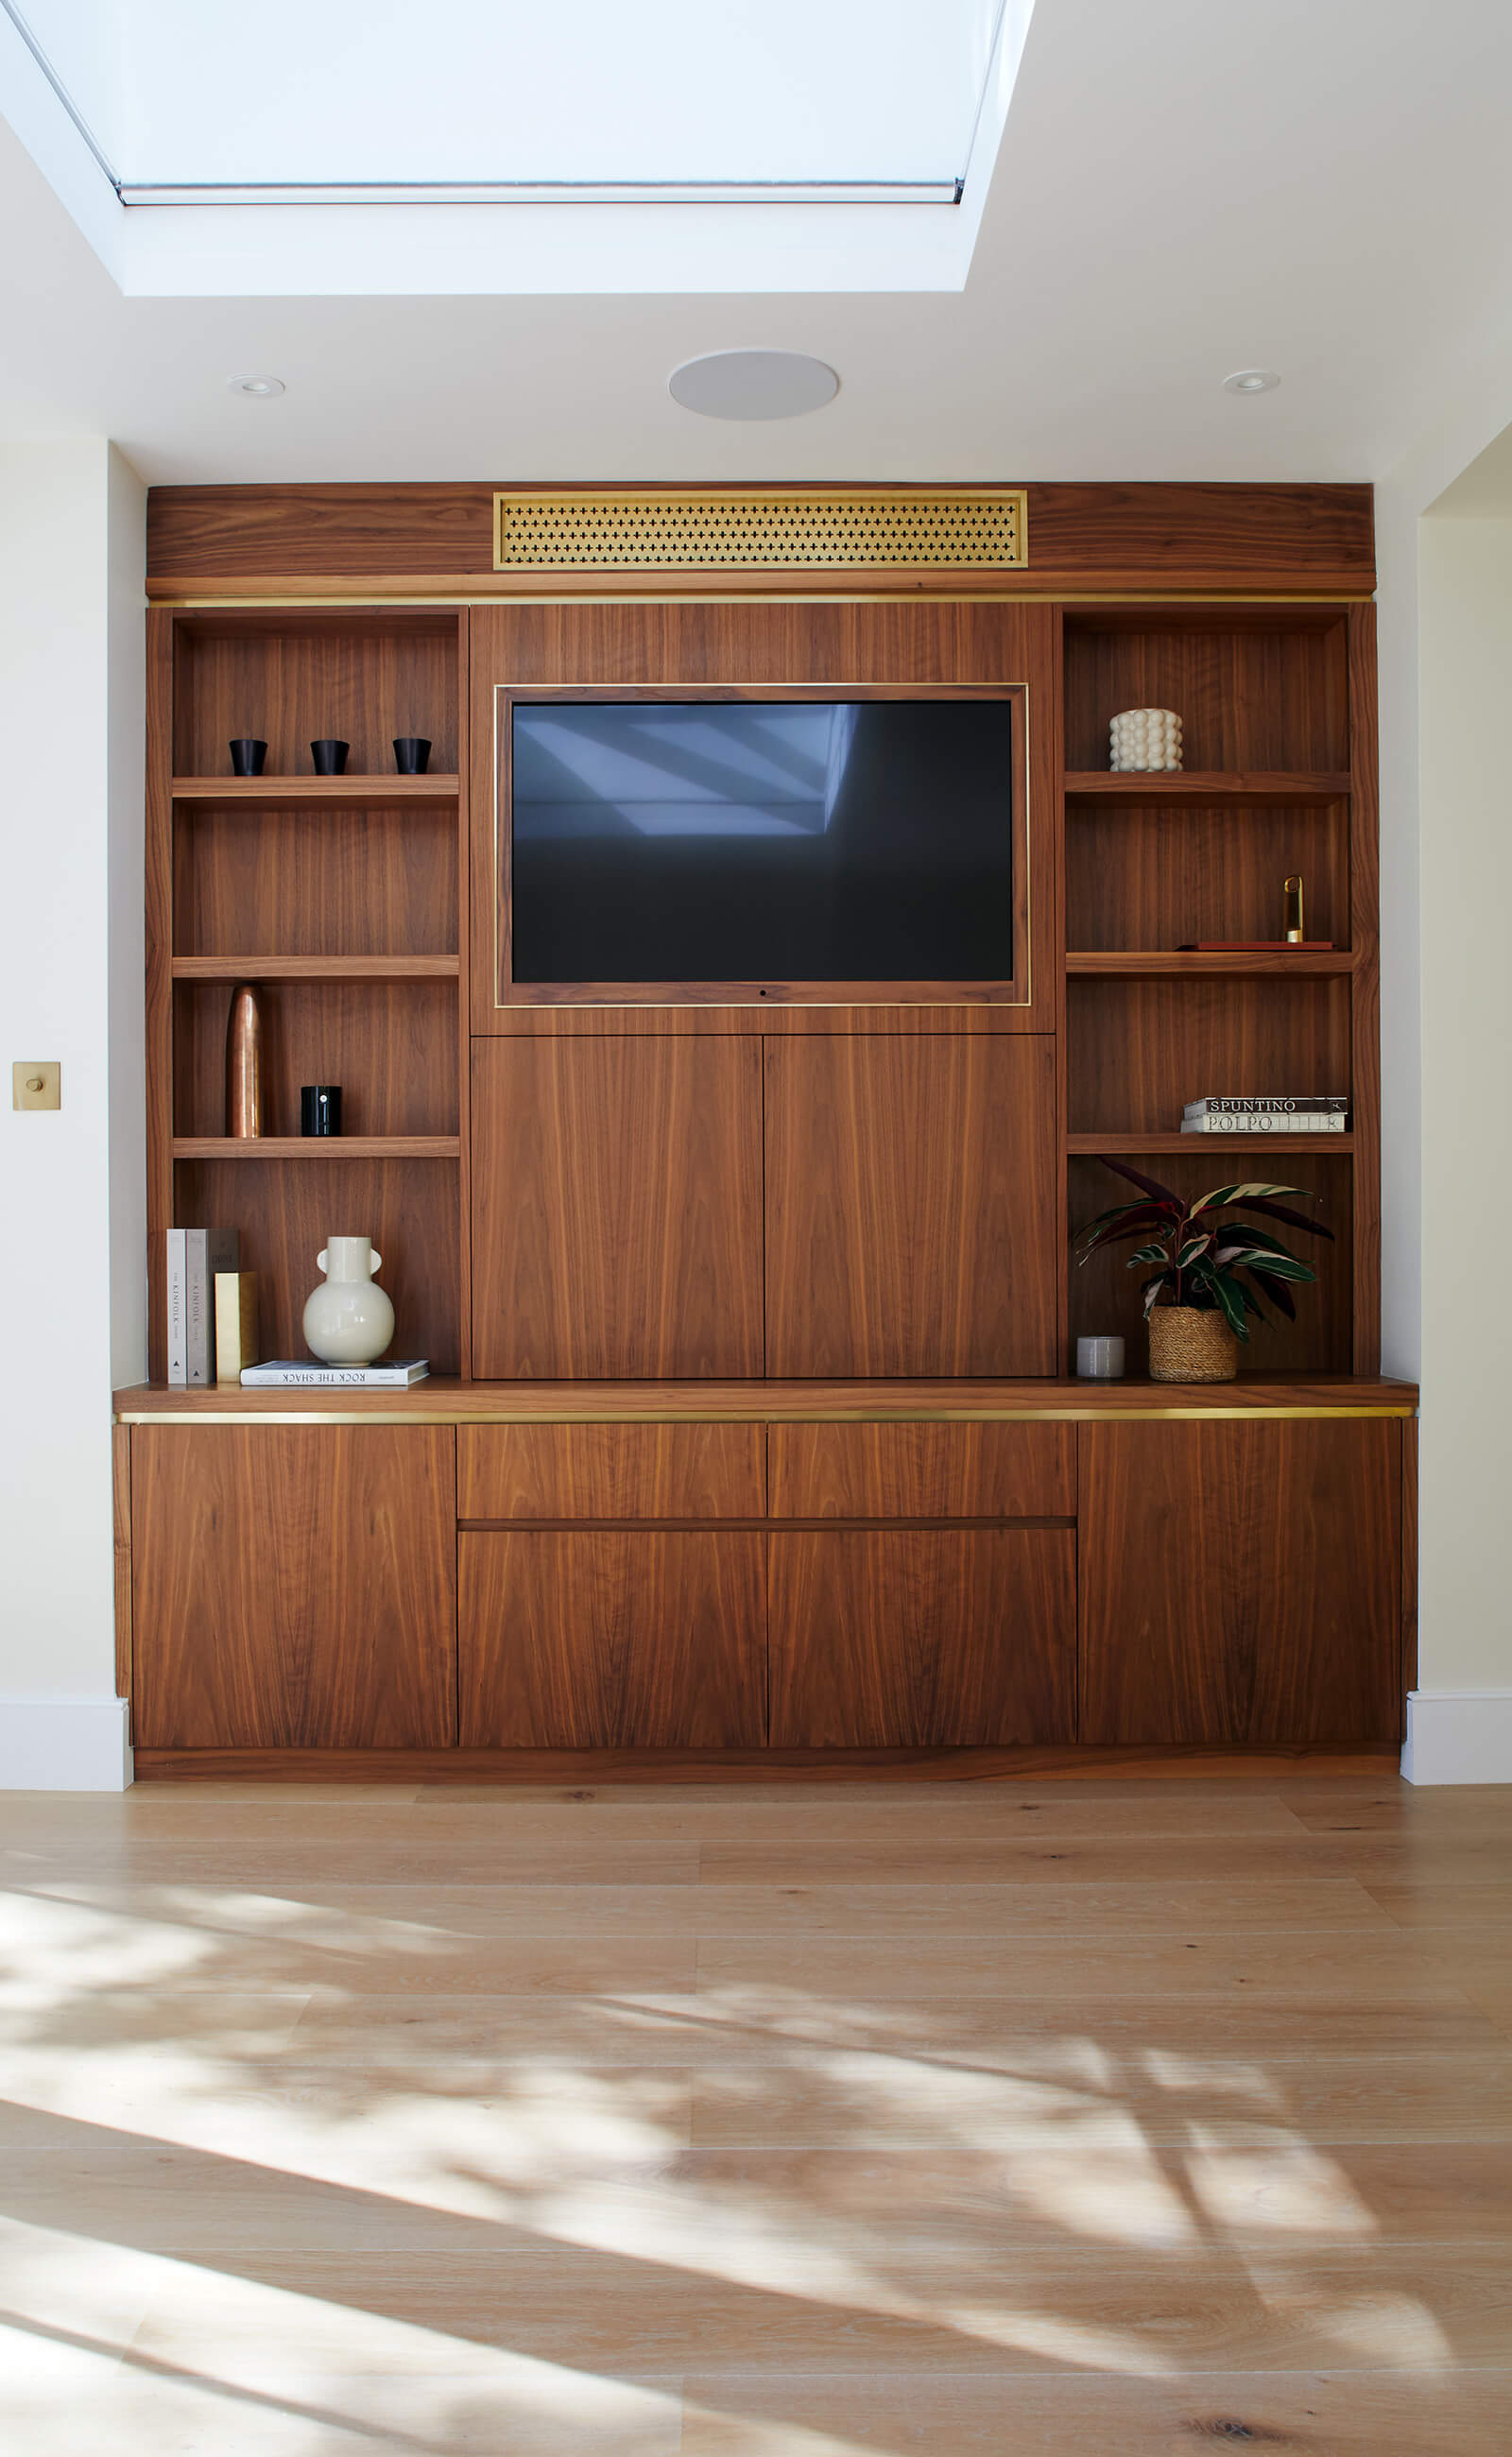 Bespoke walnut cabinetry for TV and air conditioning with brass detail